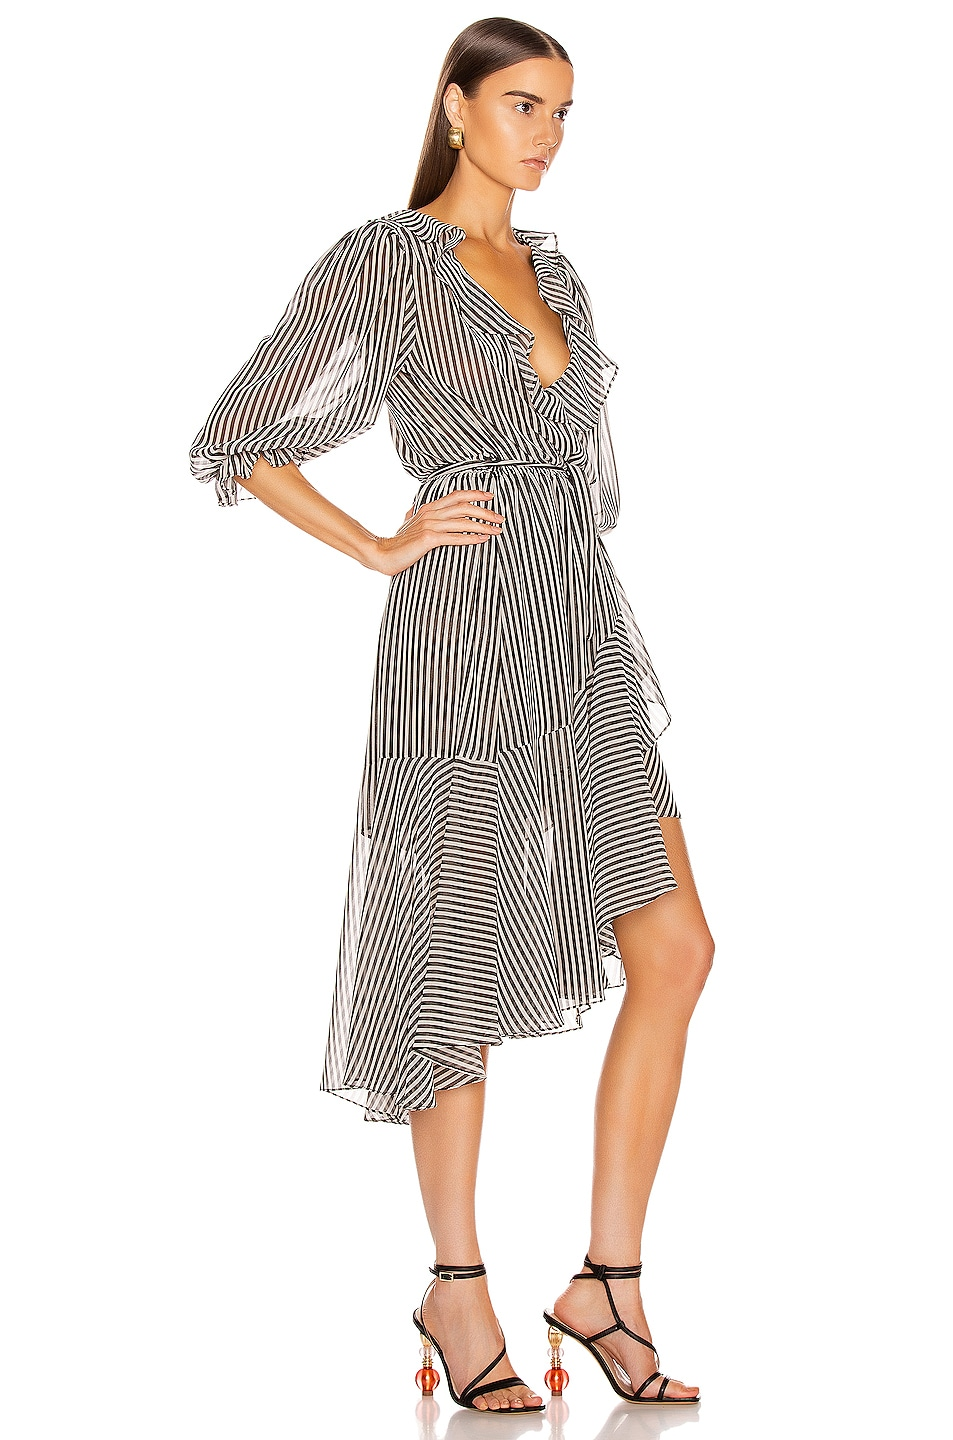 Image 2 of ICONS Objects of Devotion The Cha Cha Dress in Black & White Stripe